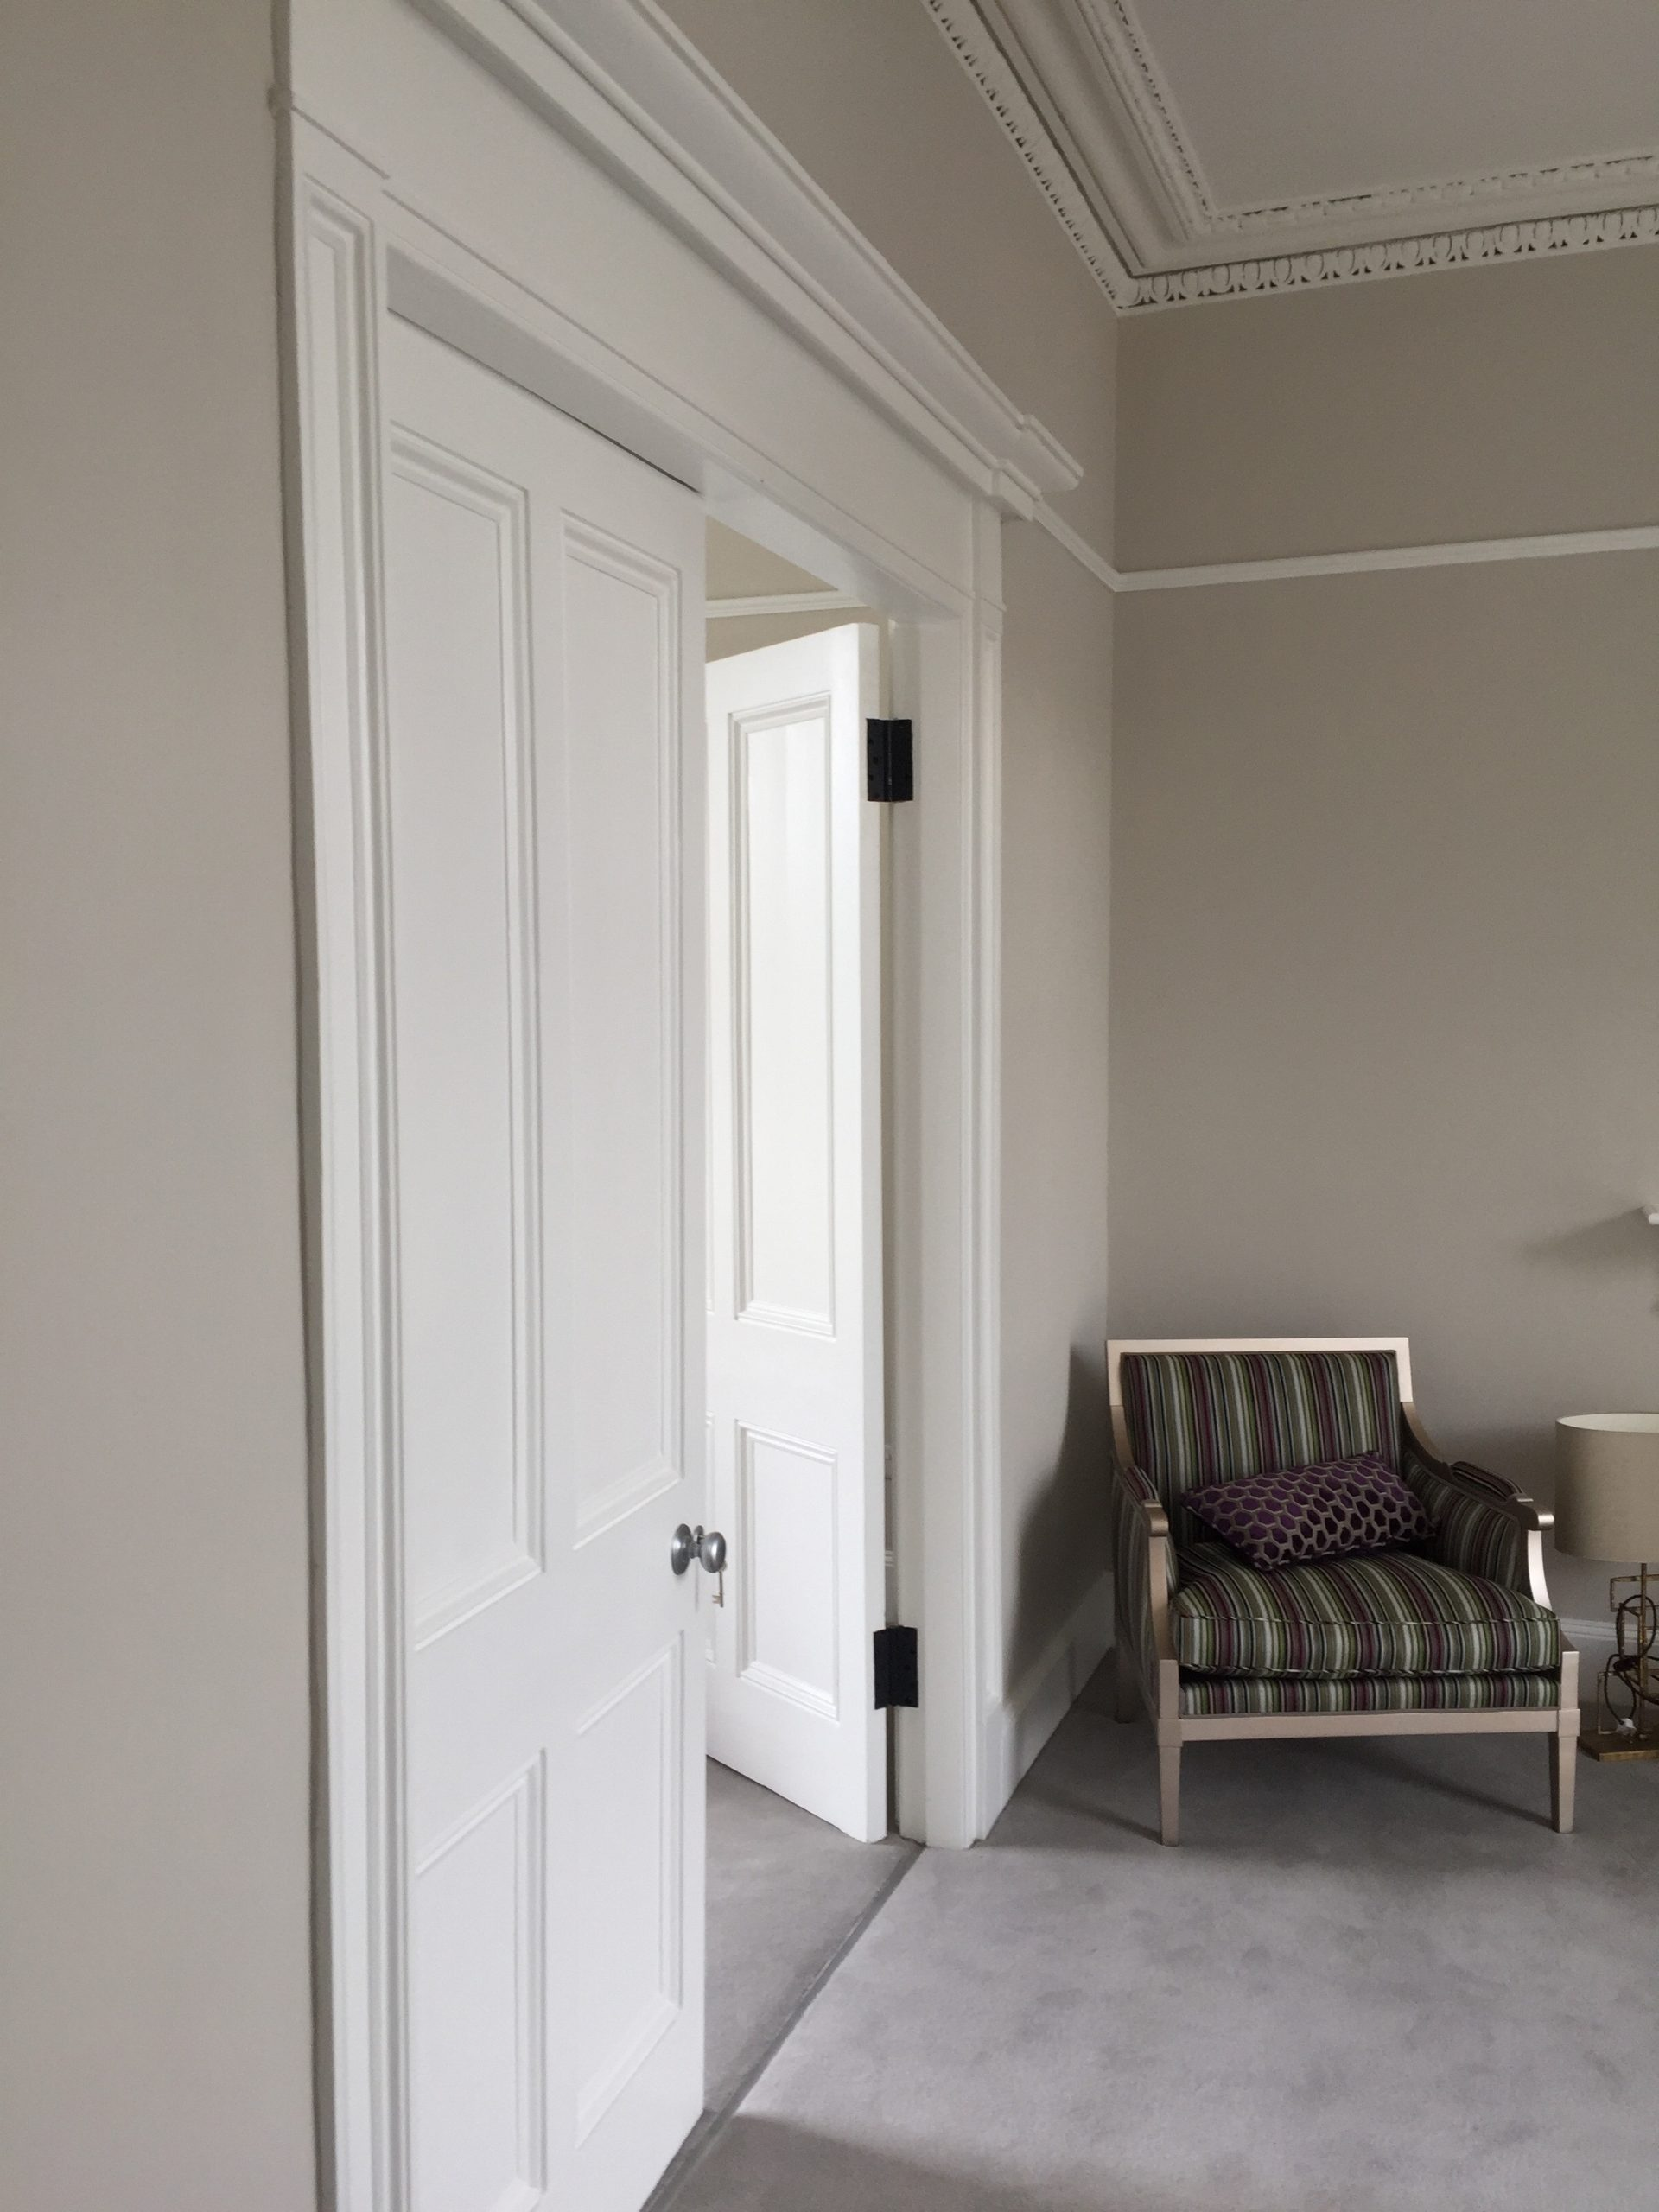 Period house bedroom painters and decorators in Ranelagh